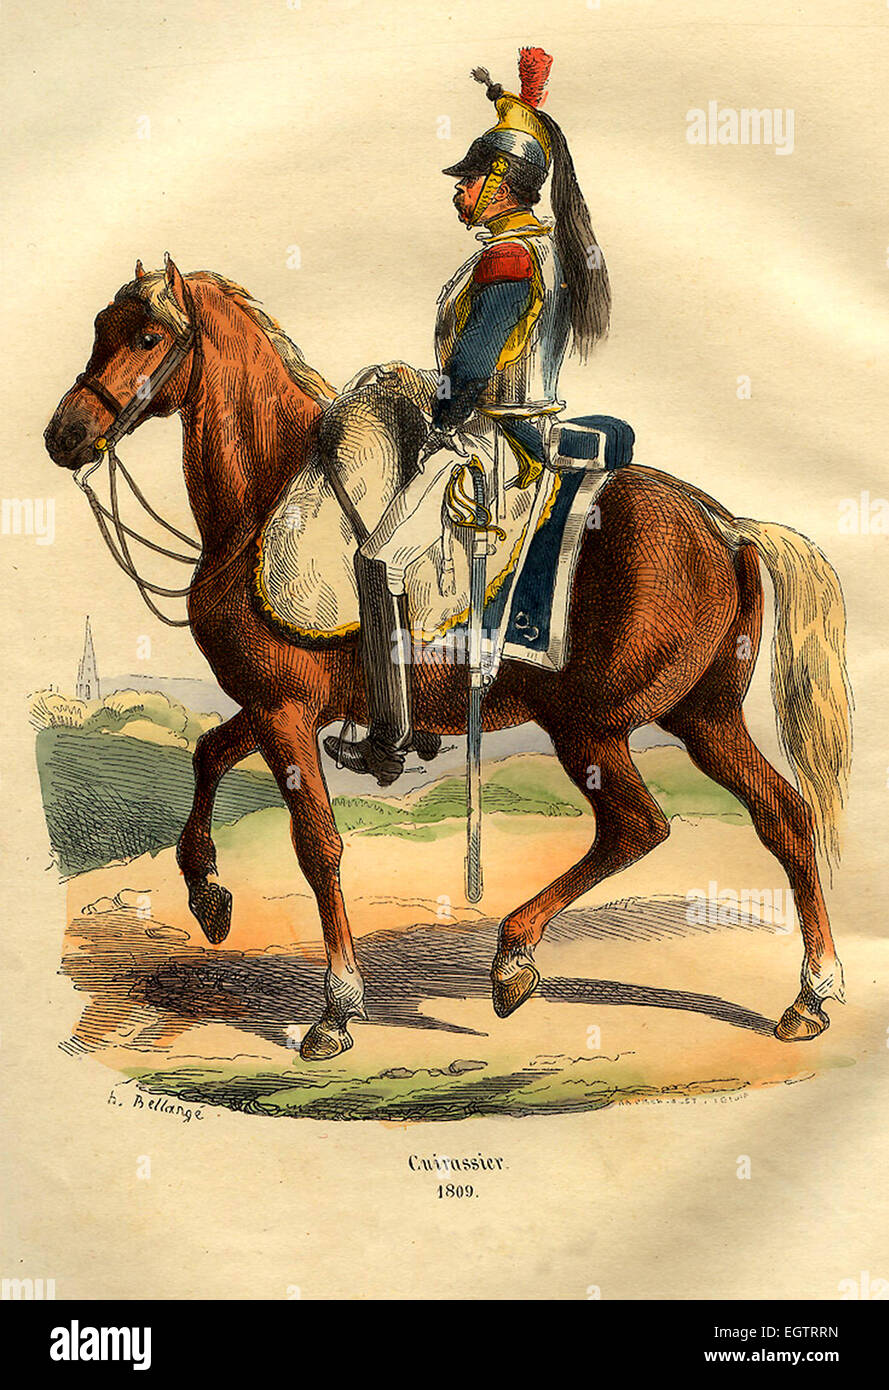 French Cuirassier cavalry officer - Stock Image